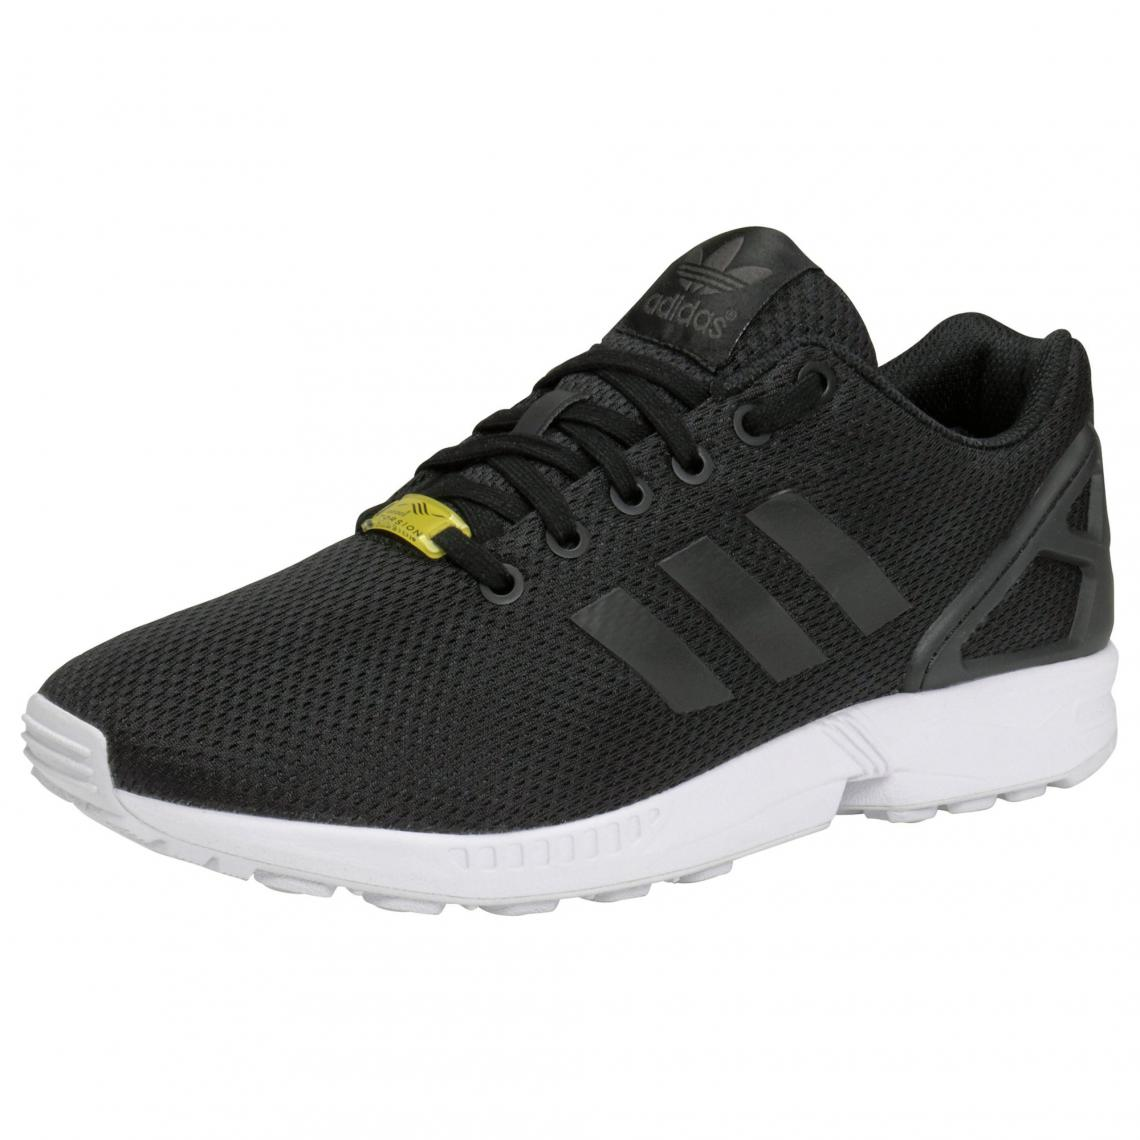 competitive price 738f8 4f3a8 Chaussures running homme ZX Flux adidas - Noir Adidas Homme